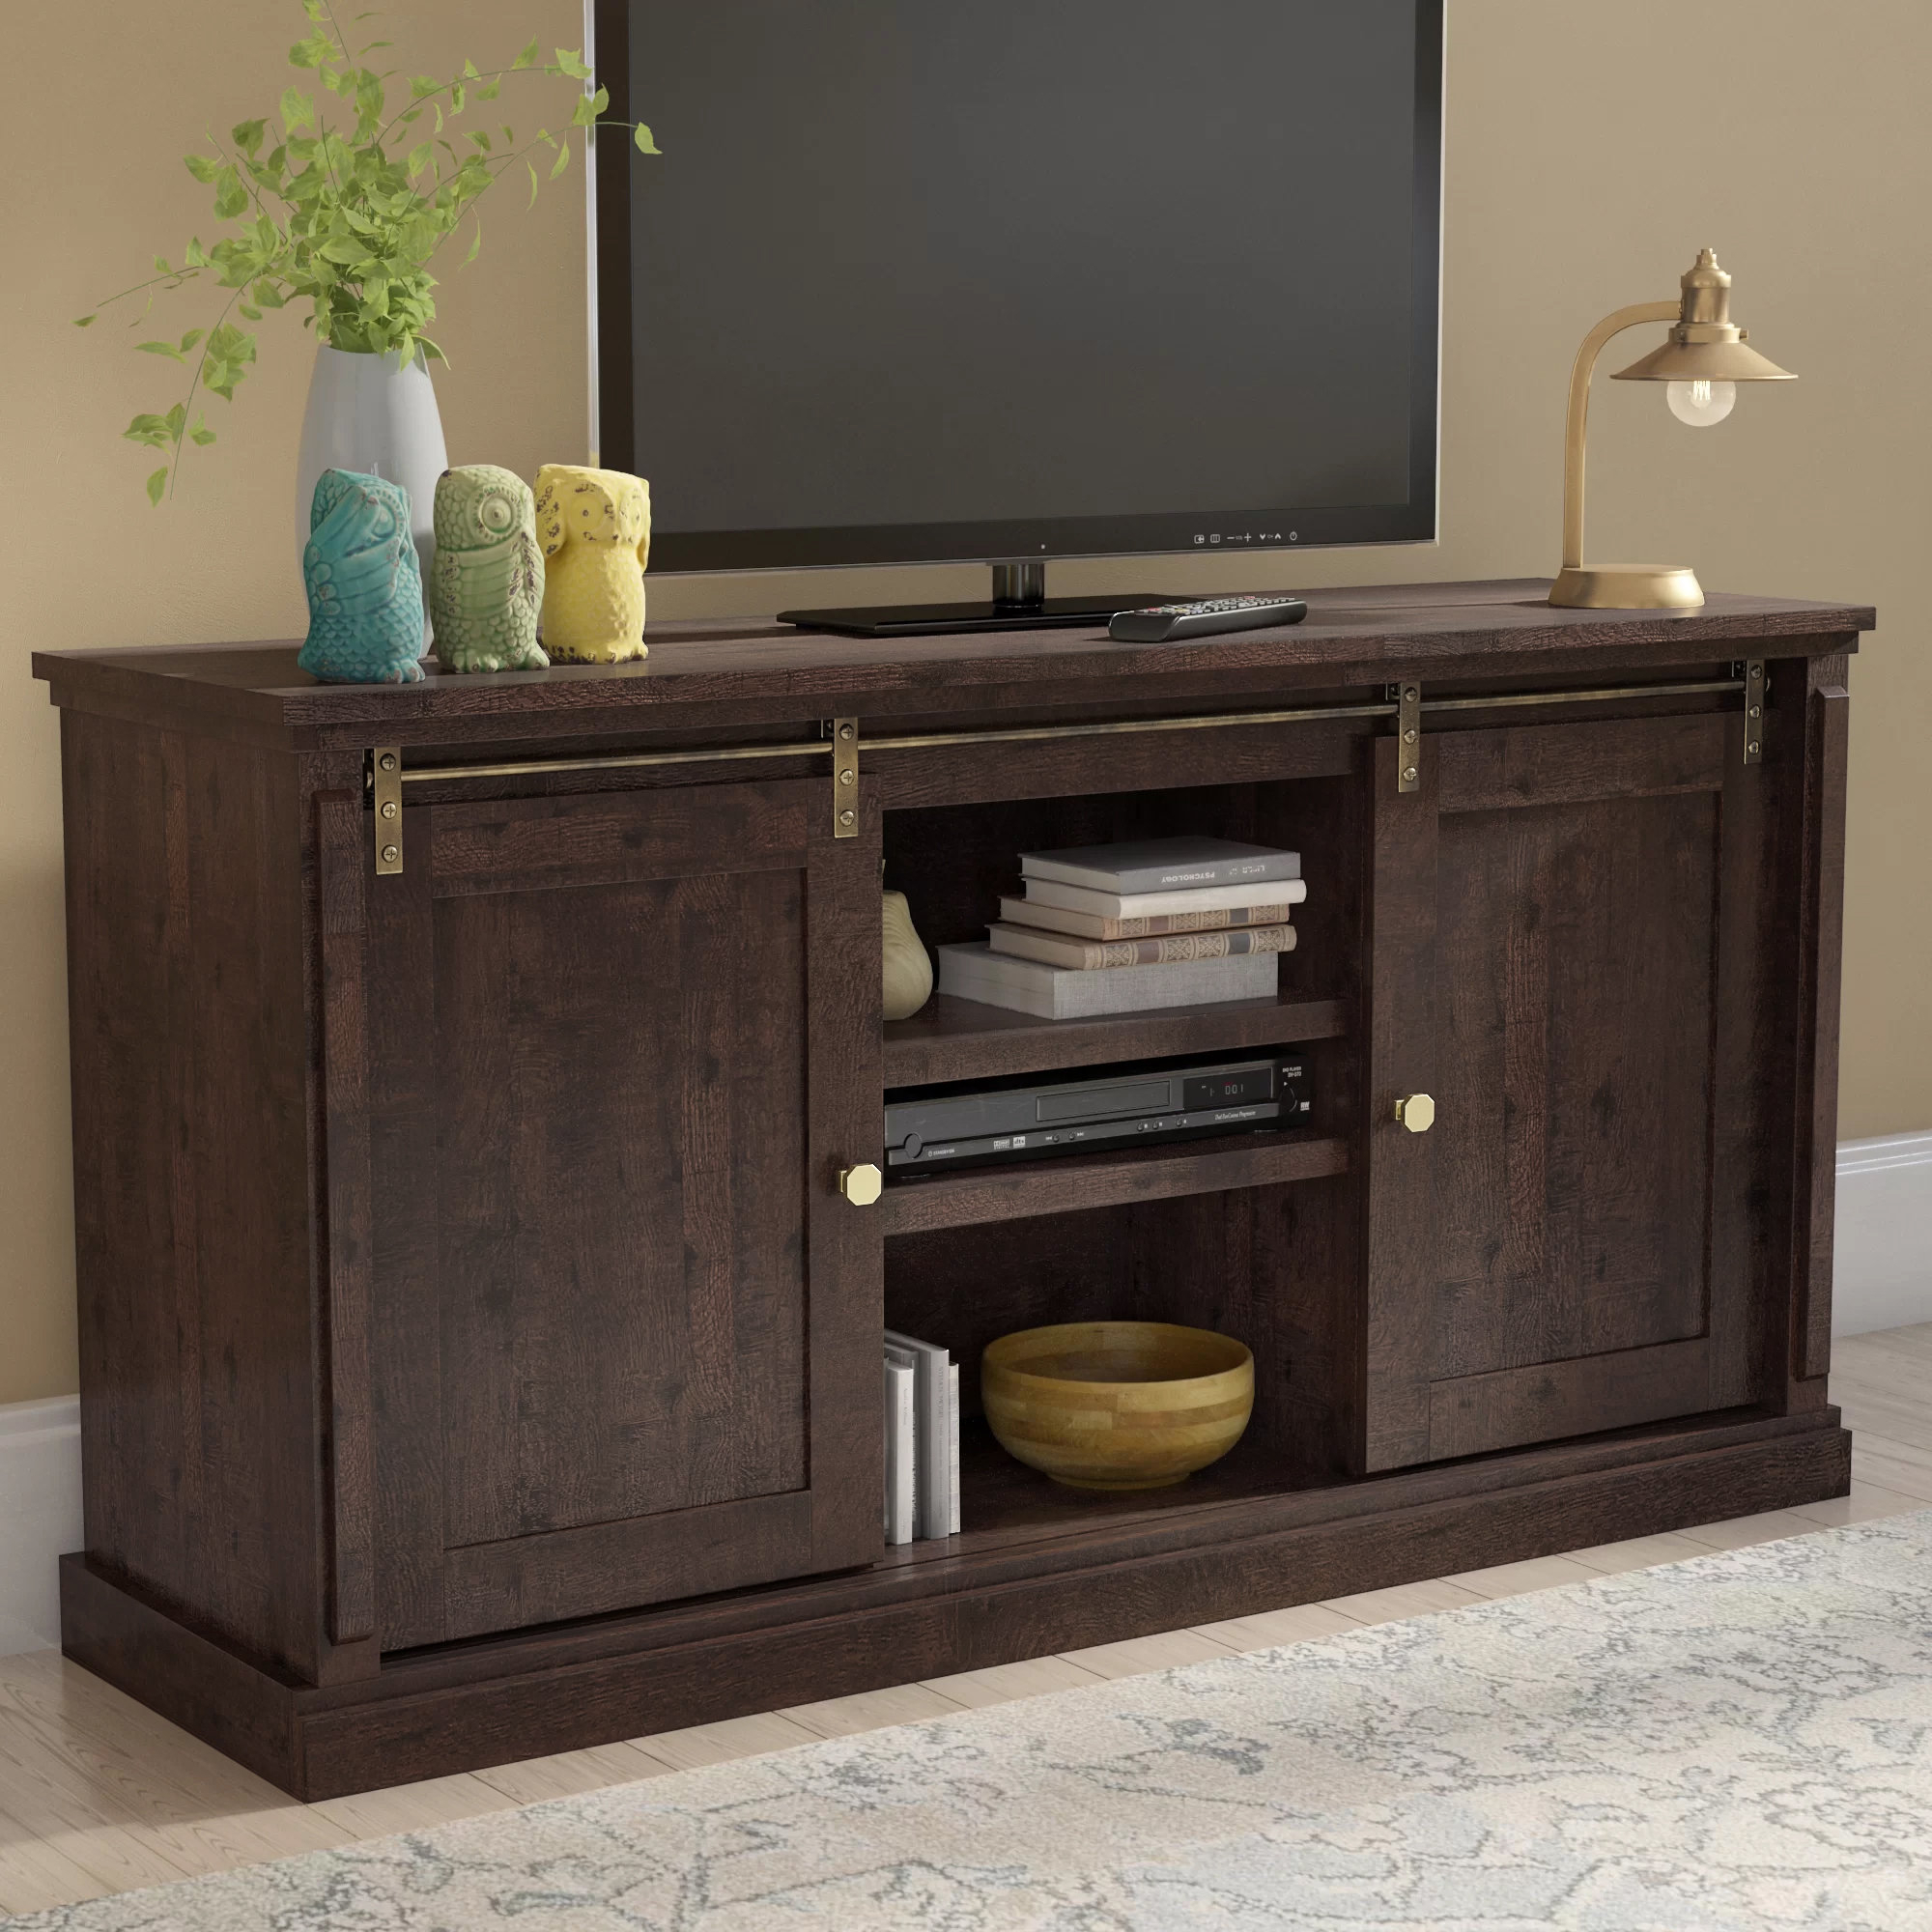 Laurel Foundry Modern Farmhouse Sebastien Tv Stand For Tvs Up To 70 pertaining to Walton 74 Inch Open Tv Stands (Image 17 of 30)